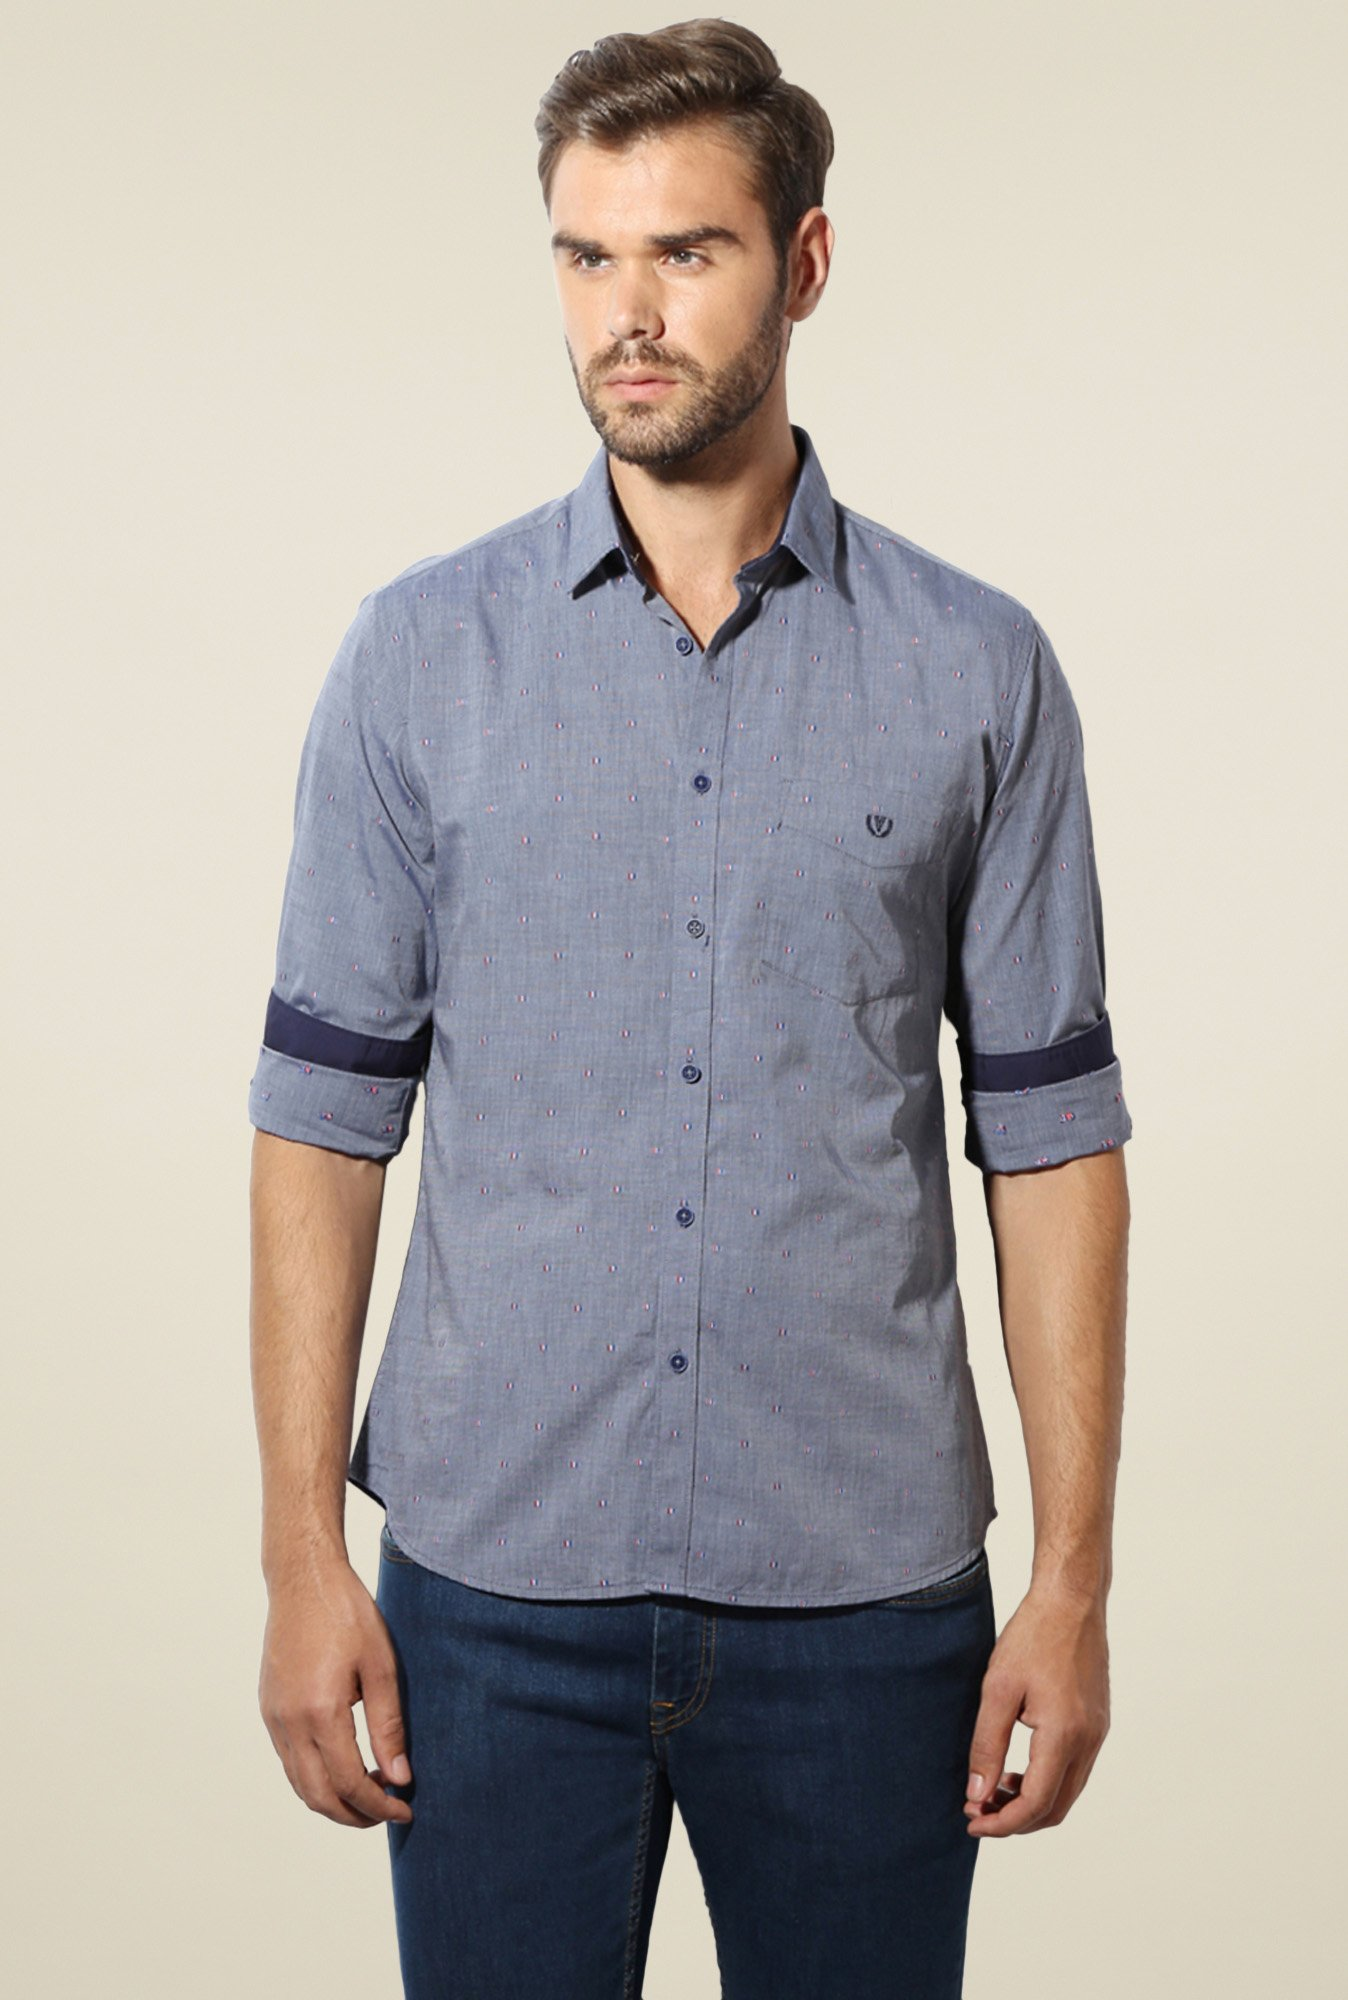 Van Heusen Grey Slim Fit Shirt